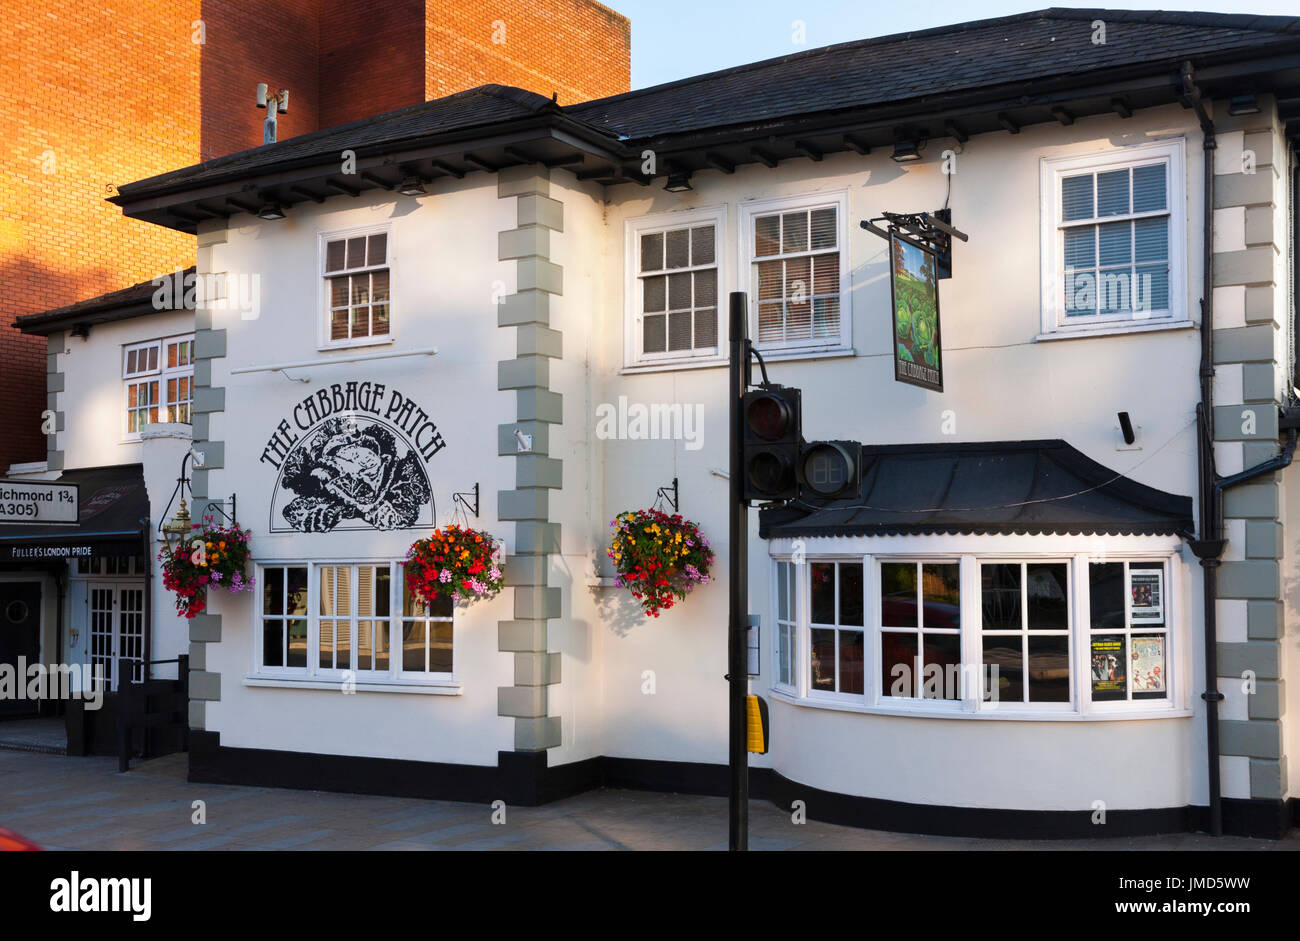 The Cabbage Patch / local pub / public house. Twickenham UK; busy / crowded / popular venue on rugby match days. - Stock Image